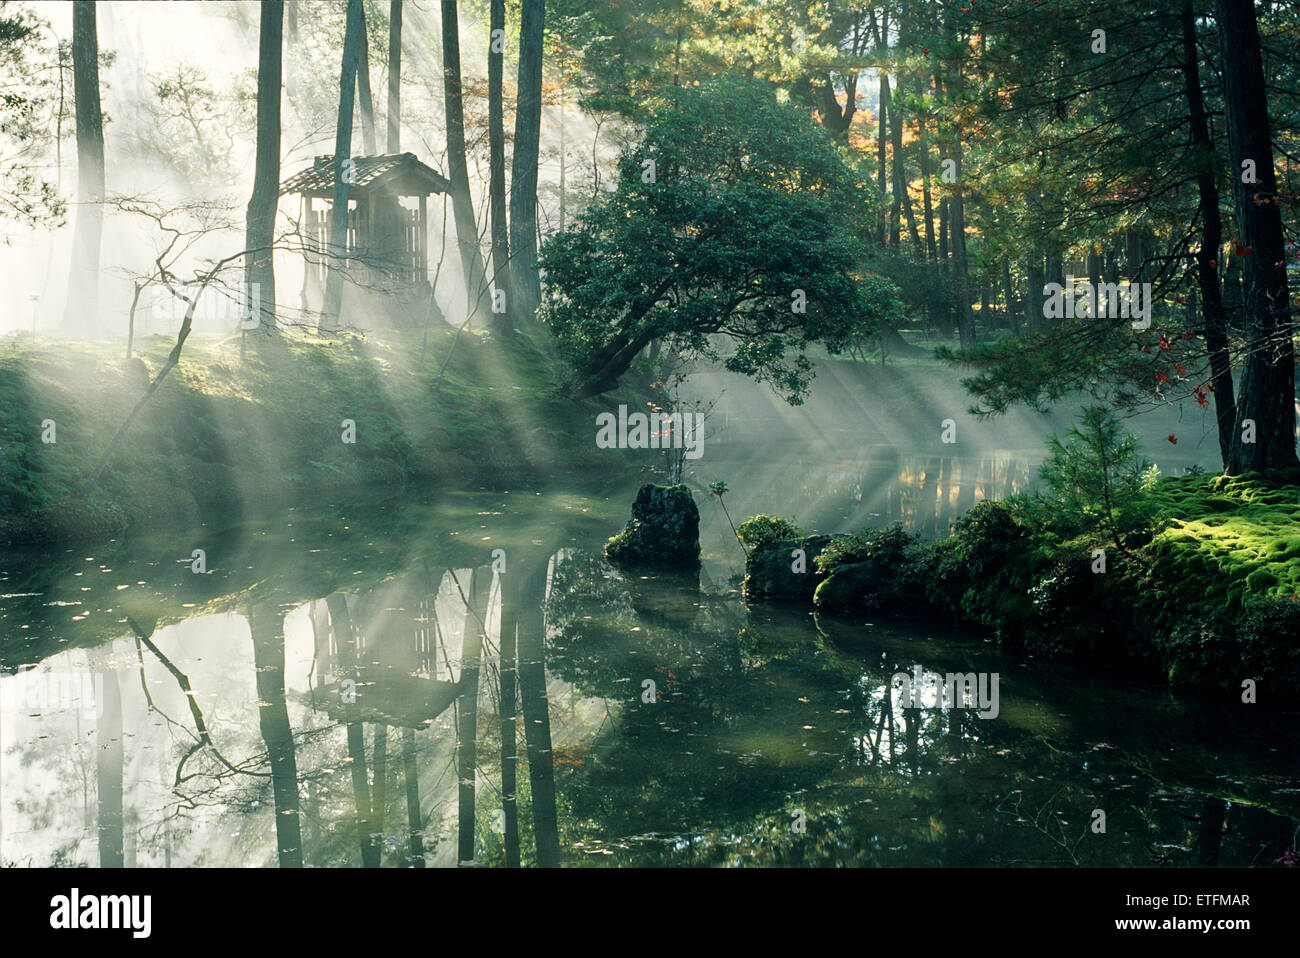 A drift of morning mist creates a mysterious atmosphere in the 900 year old garden of Saiho-ji, also known as Koka - Stock Image